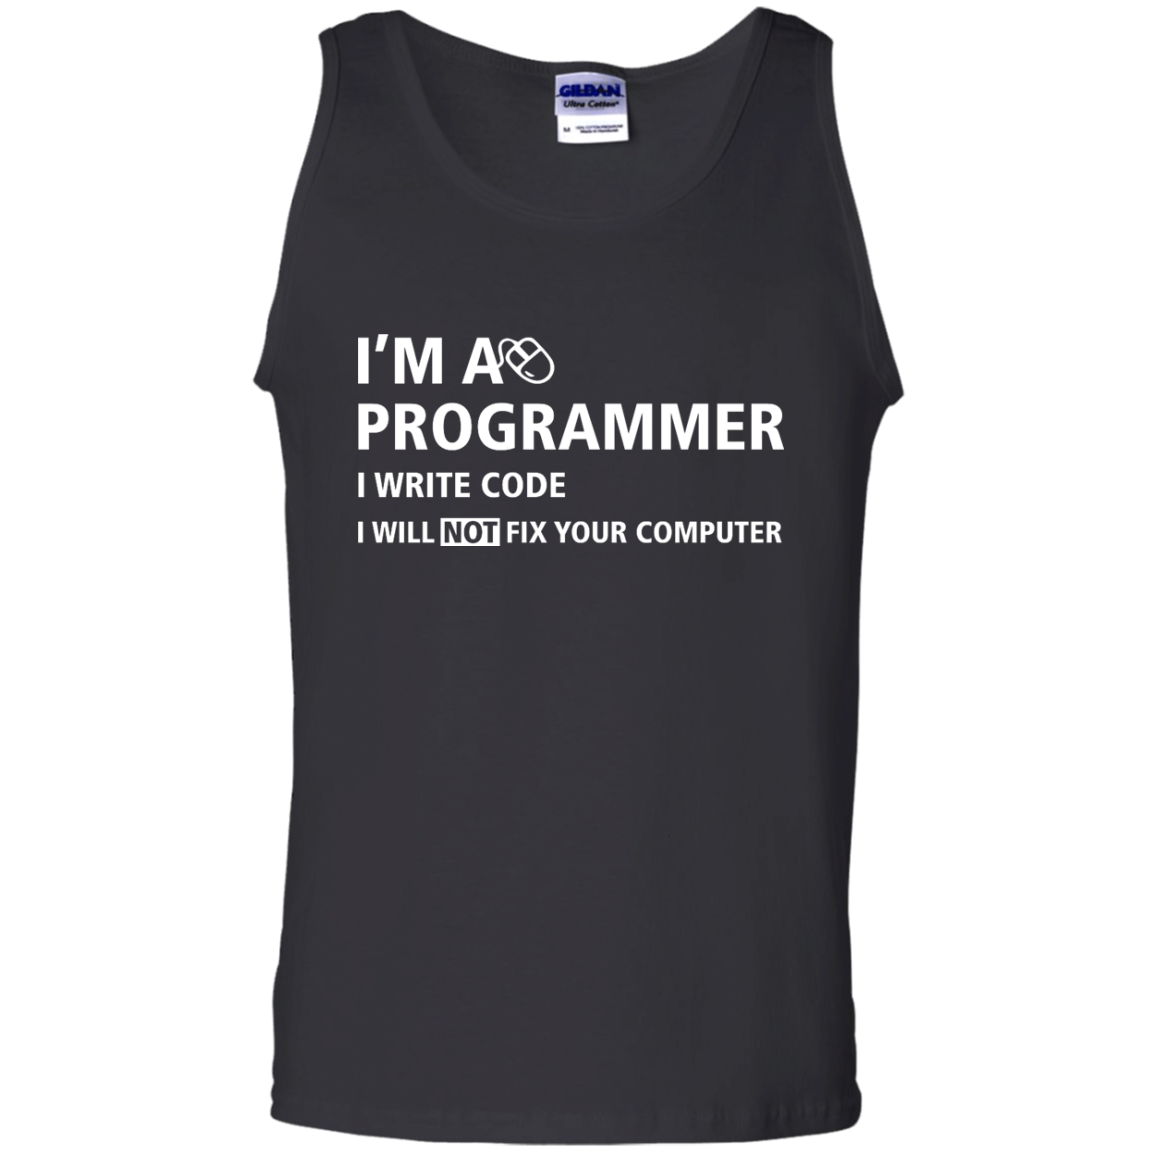 image 379px I'm a programmer I write code I will not fix your computer t shirts, tank top, hoodies